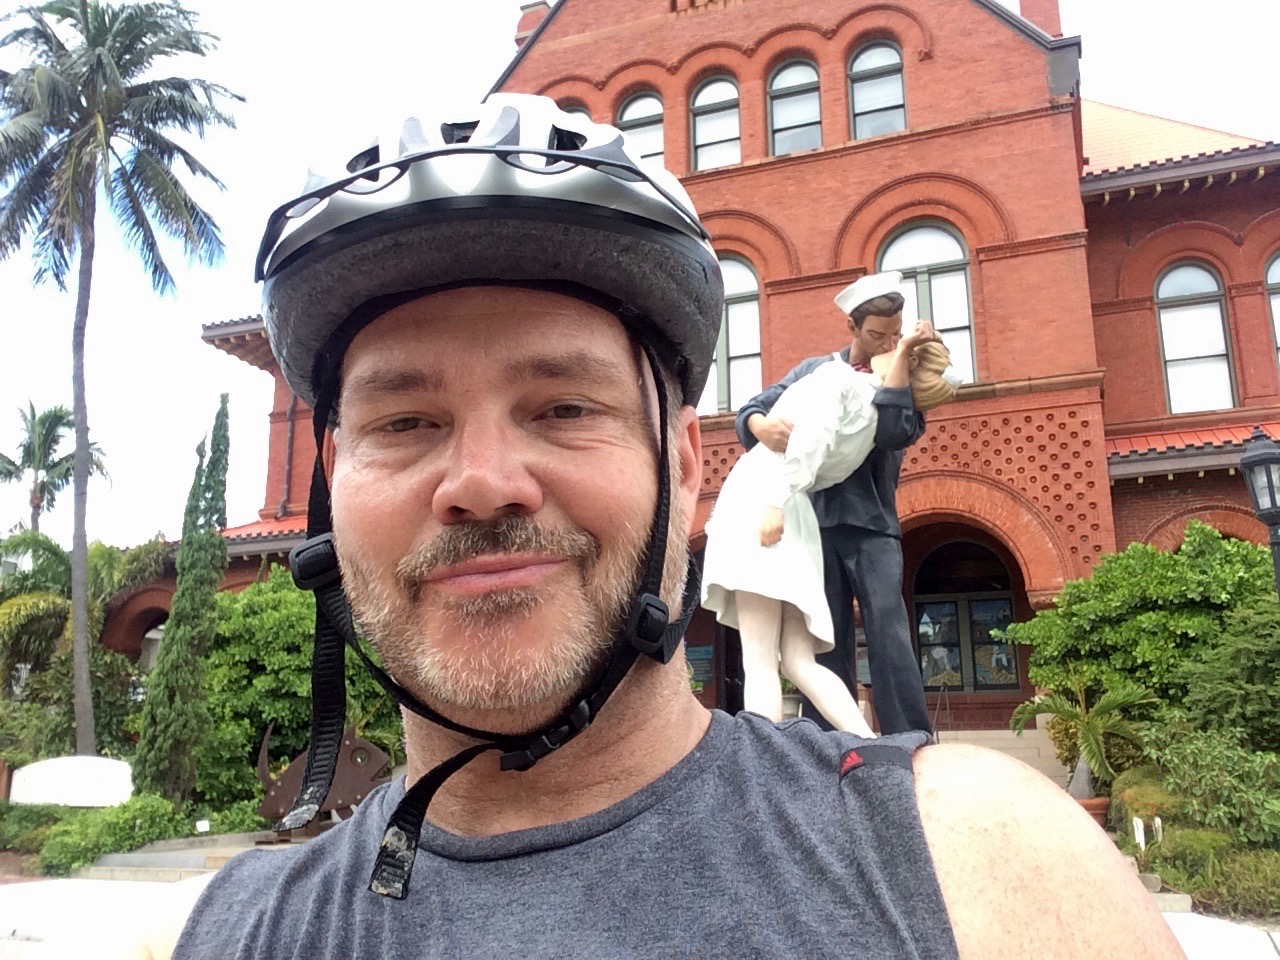 On the Key Lime Bike Tour w/ Our Guide Clint